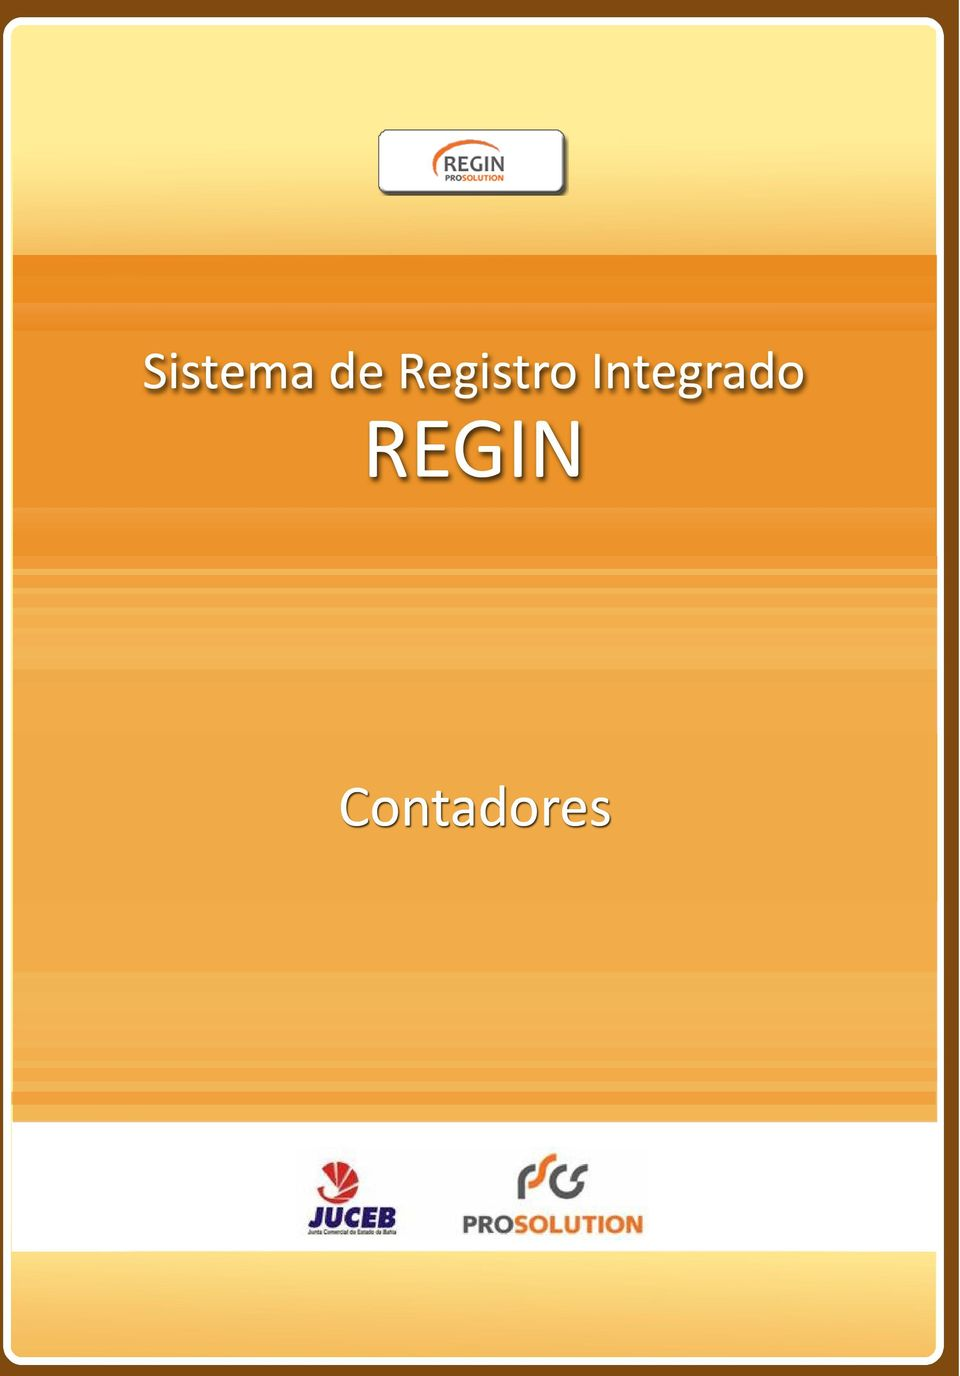 de Registro Integrado